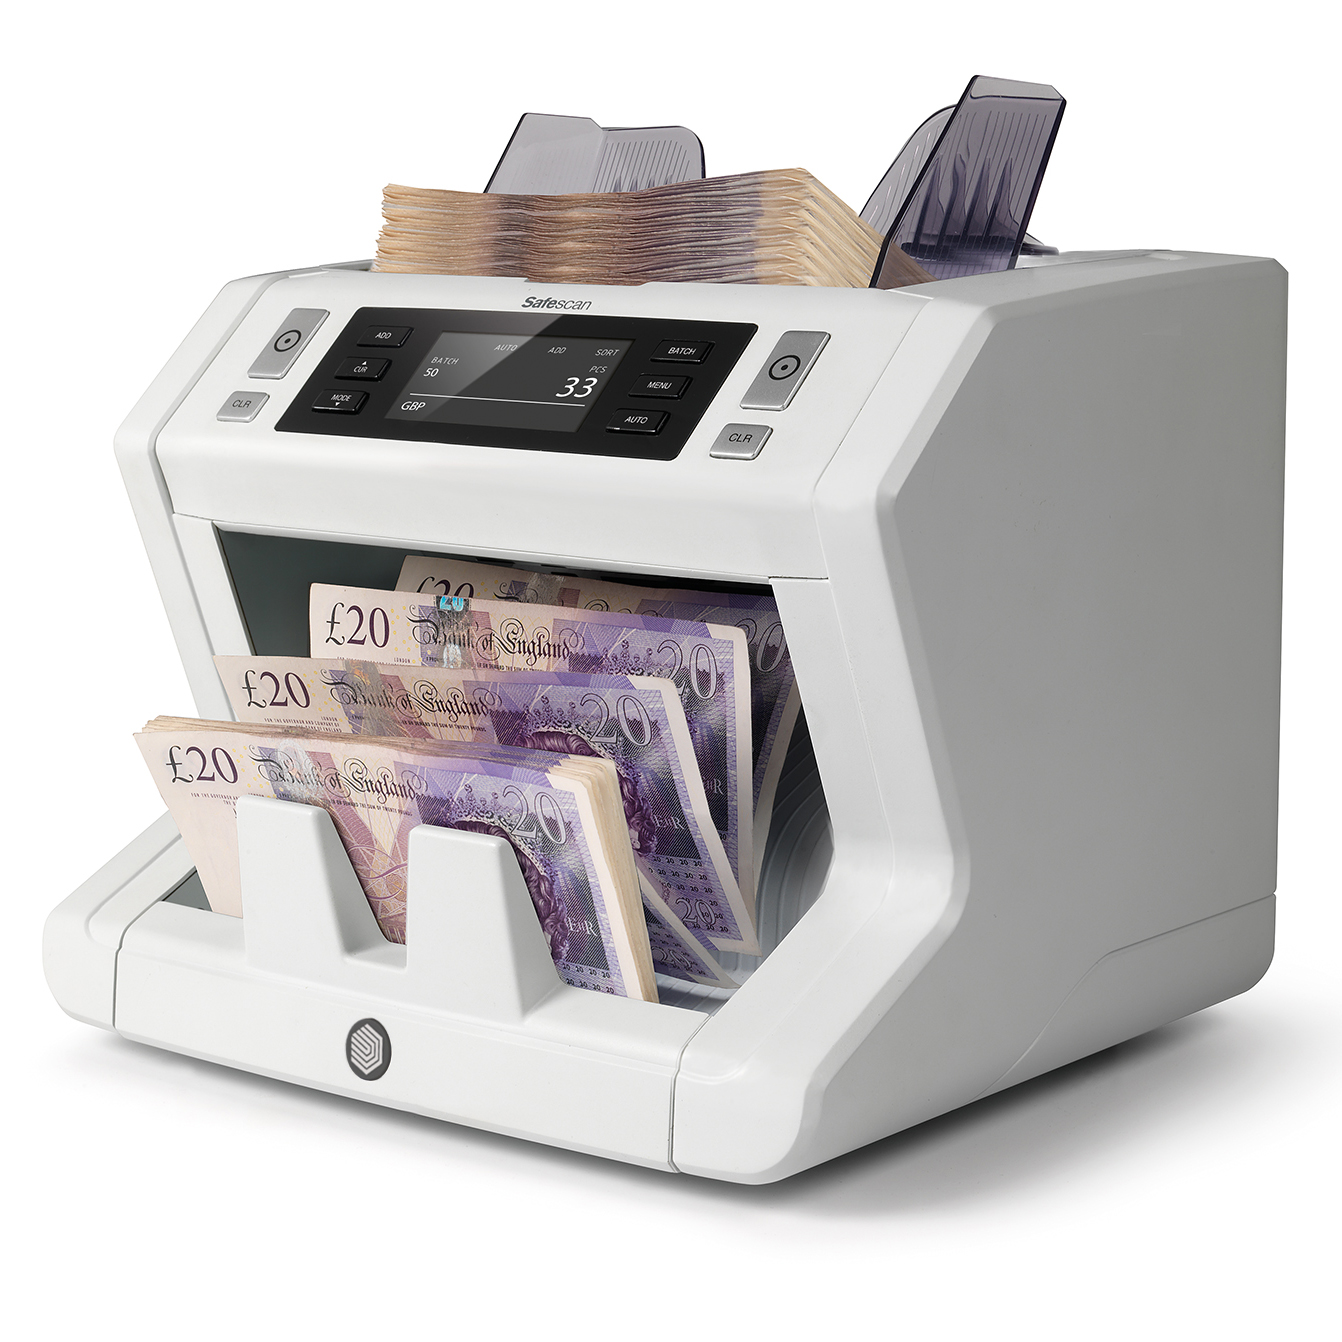 Safescan 2680 GBP Banknote Counter and Counterfeit Detector L262xW264xH248mm Grey Ref 112-0510